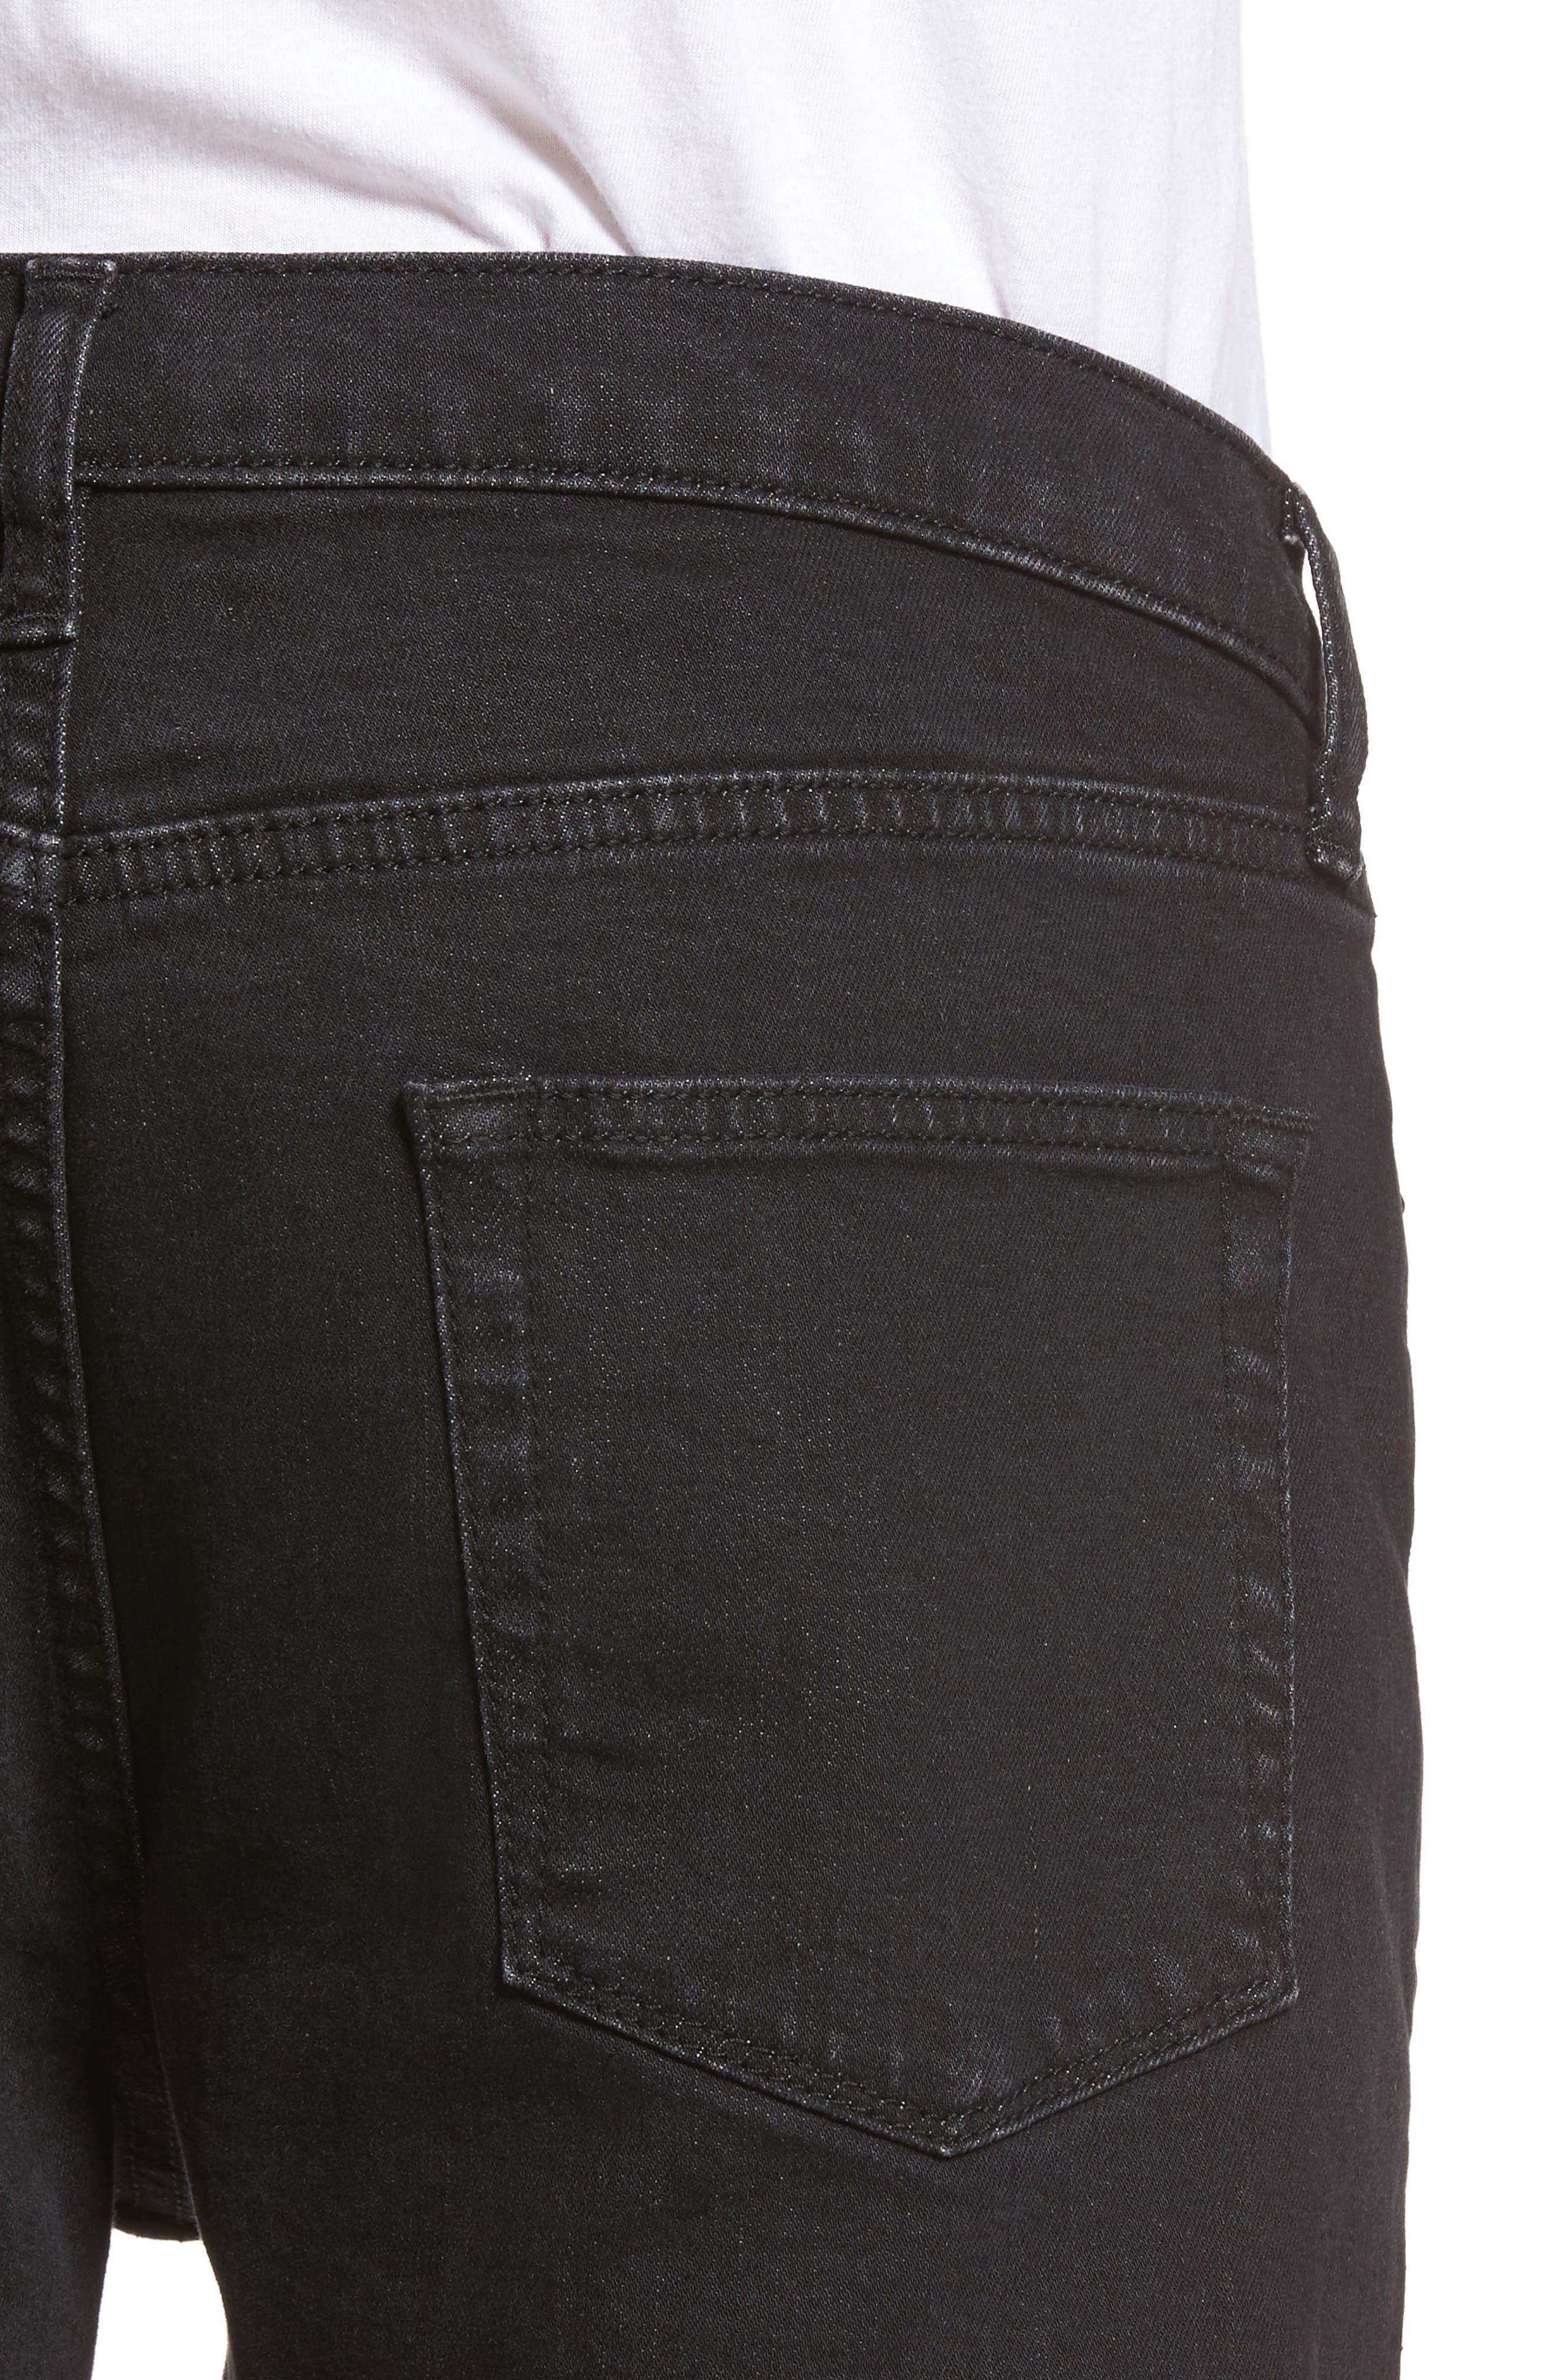 Washed Slim Fit Jeans,                             Alternate thumbnail 4, color,                             001